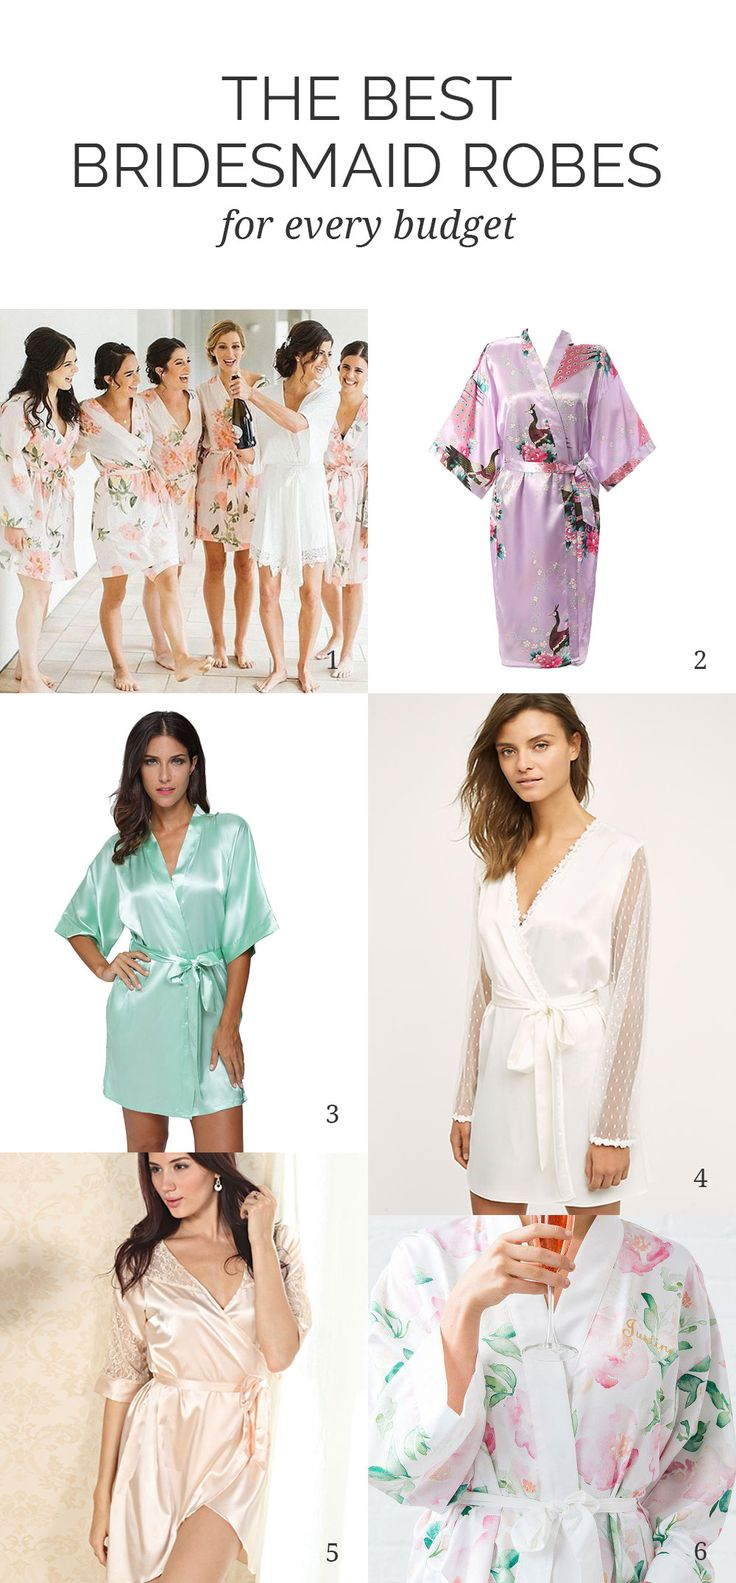 Are you looking for the perfect gift for your bridesmaids? Here are our favorite bridesmaid robes for every style and budget